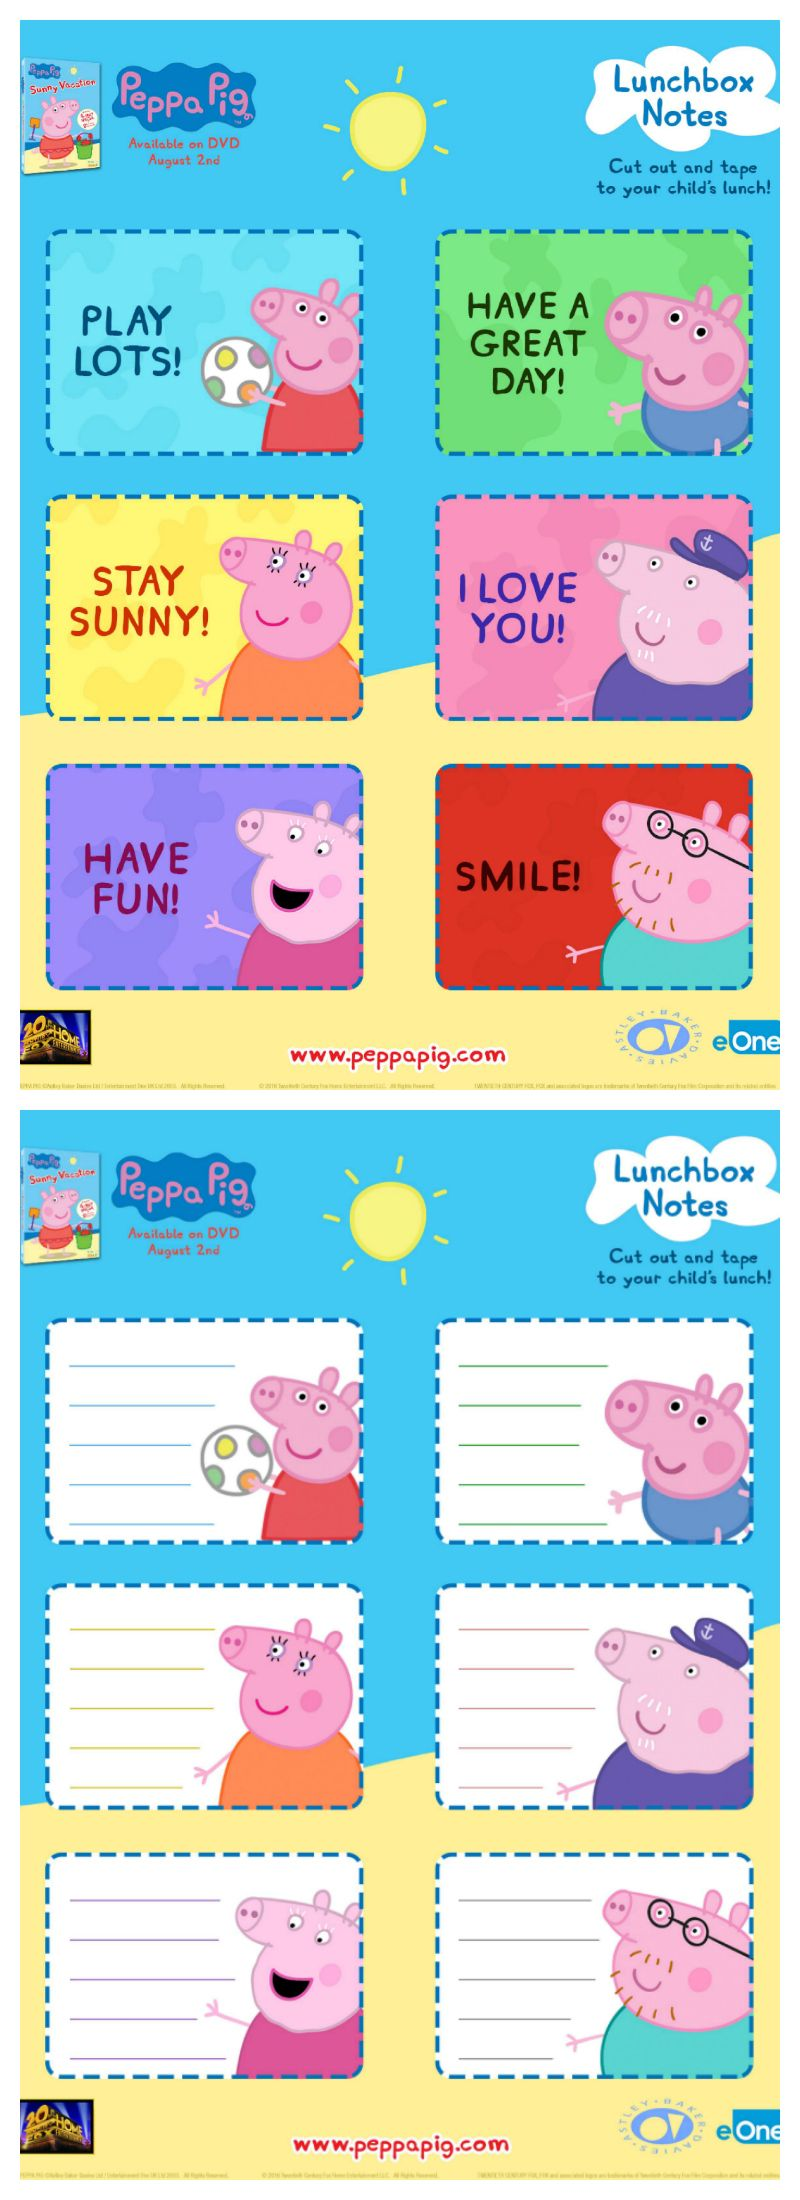 Free Peppa Pig Lunch Box Notes Peppa Pig Lunch Peppa Pig Lunch Box Lunch Box Notes [ 2200 x 800 Pixel ]